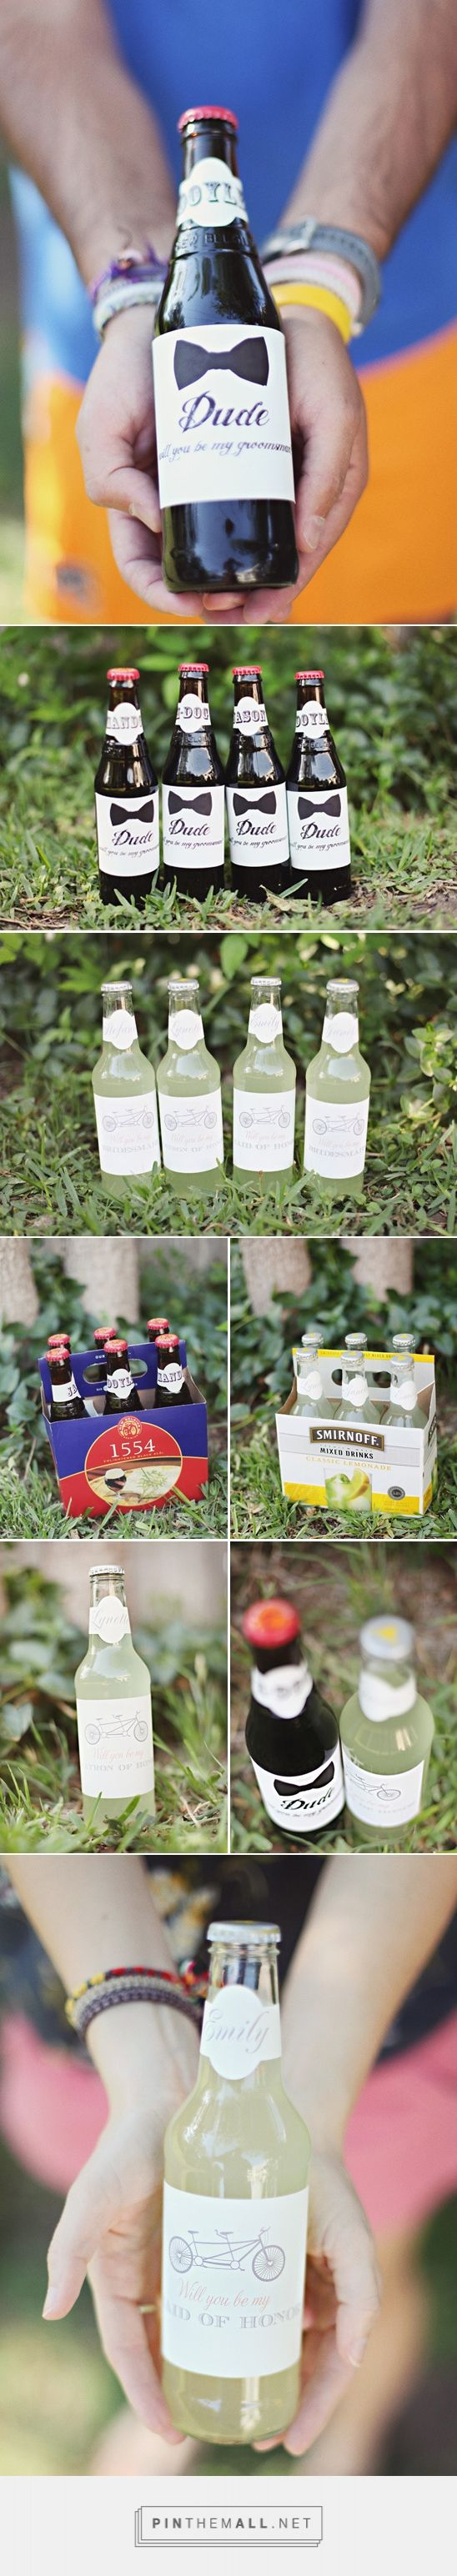 95 best wedding labels ideas images on pinterest wedding custom diy wedding beer bottle labels solutioingenieria Choice Image